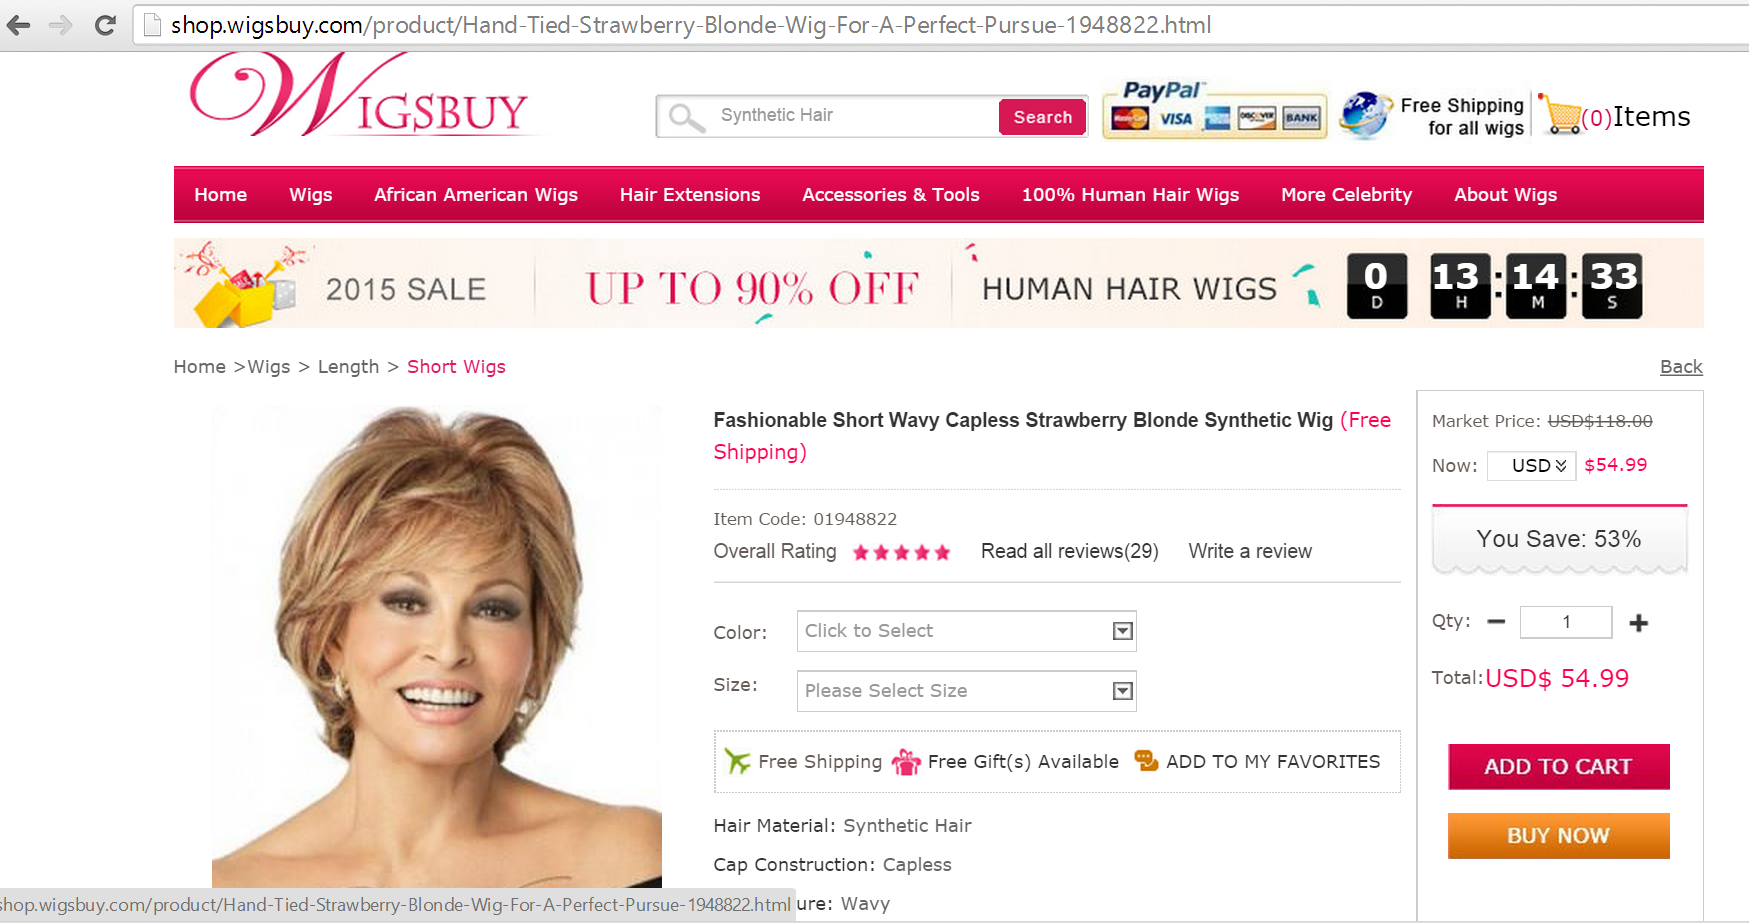 Don t be fooled Applause by Raquel Welch is a knockoff. WigsBuy stole the ac6e4031091a